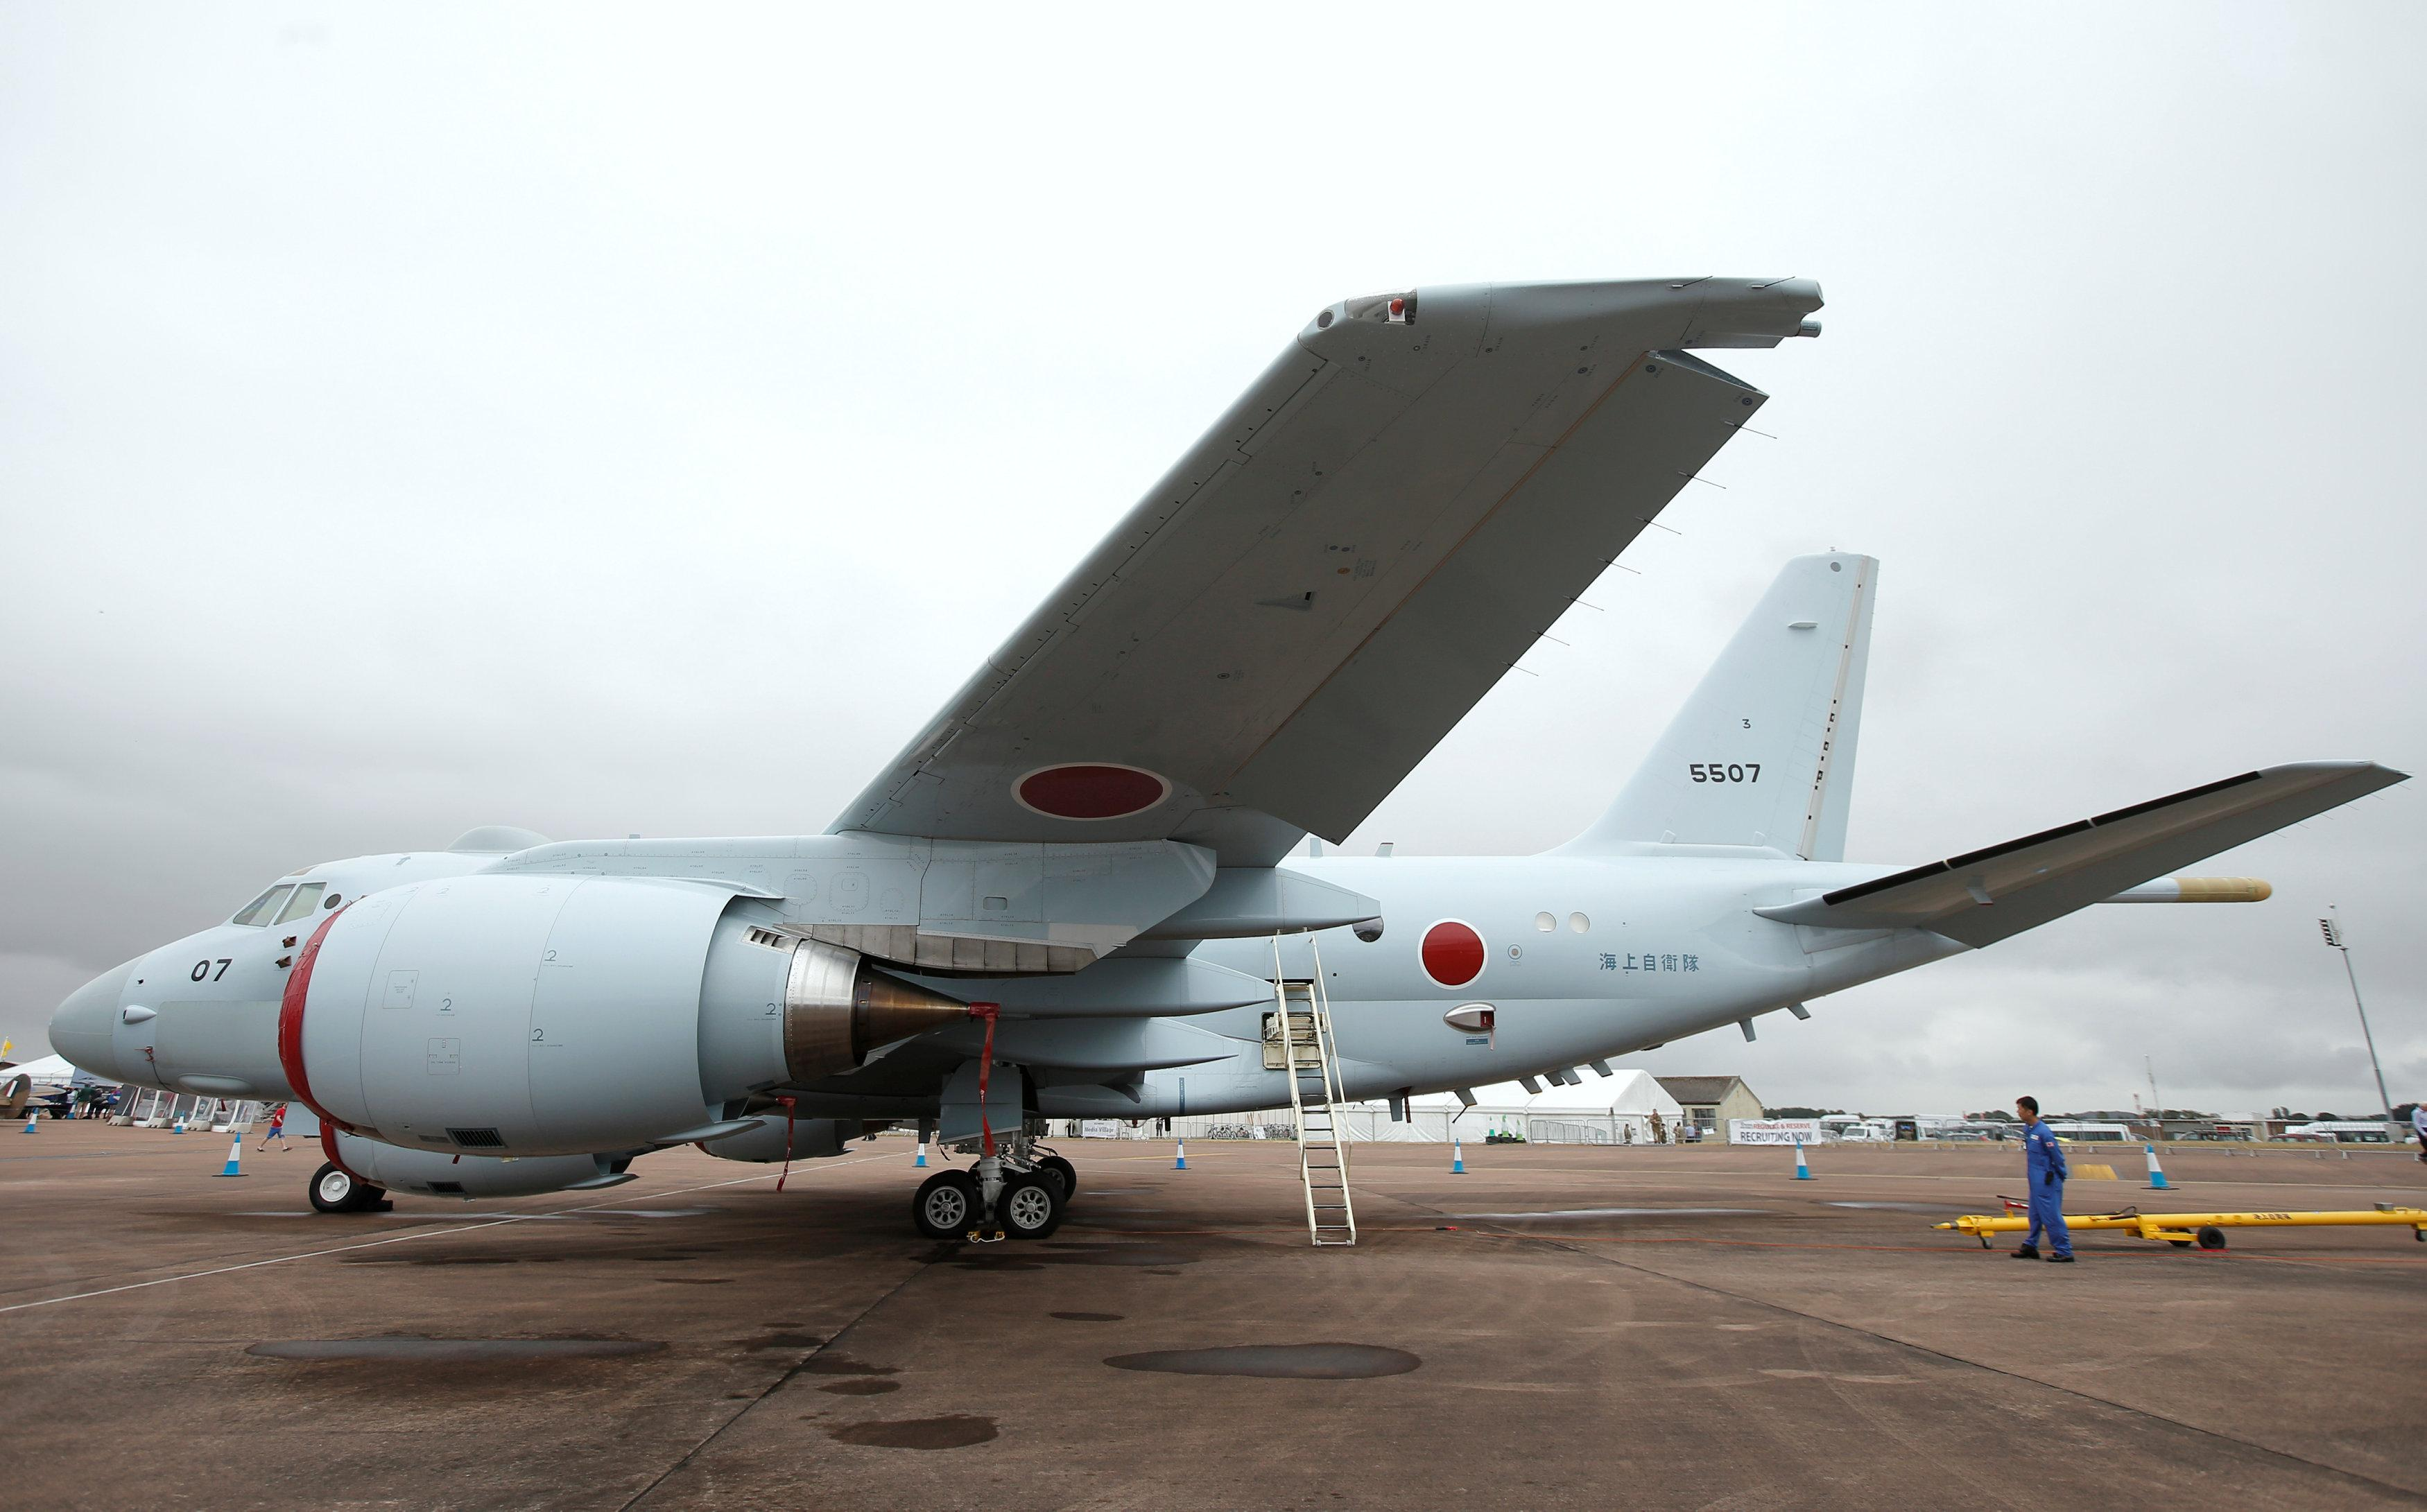 A Japanese Maritime Self-Defense Force (JMSDF) Kawasaki P-1 maritime patrol aircraft is seen parked during the Royal International Air Tattoo at RAF Fairford, Britain July 17, 2015.  Peter Nicholls